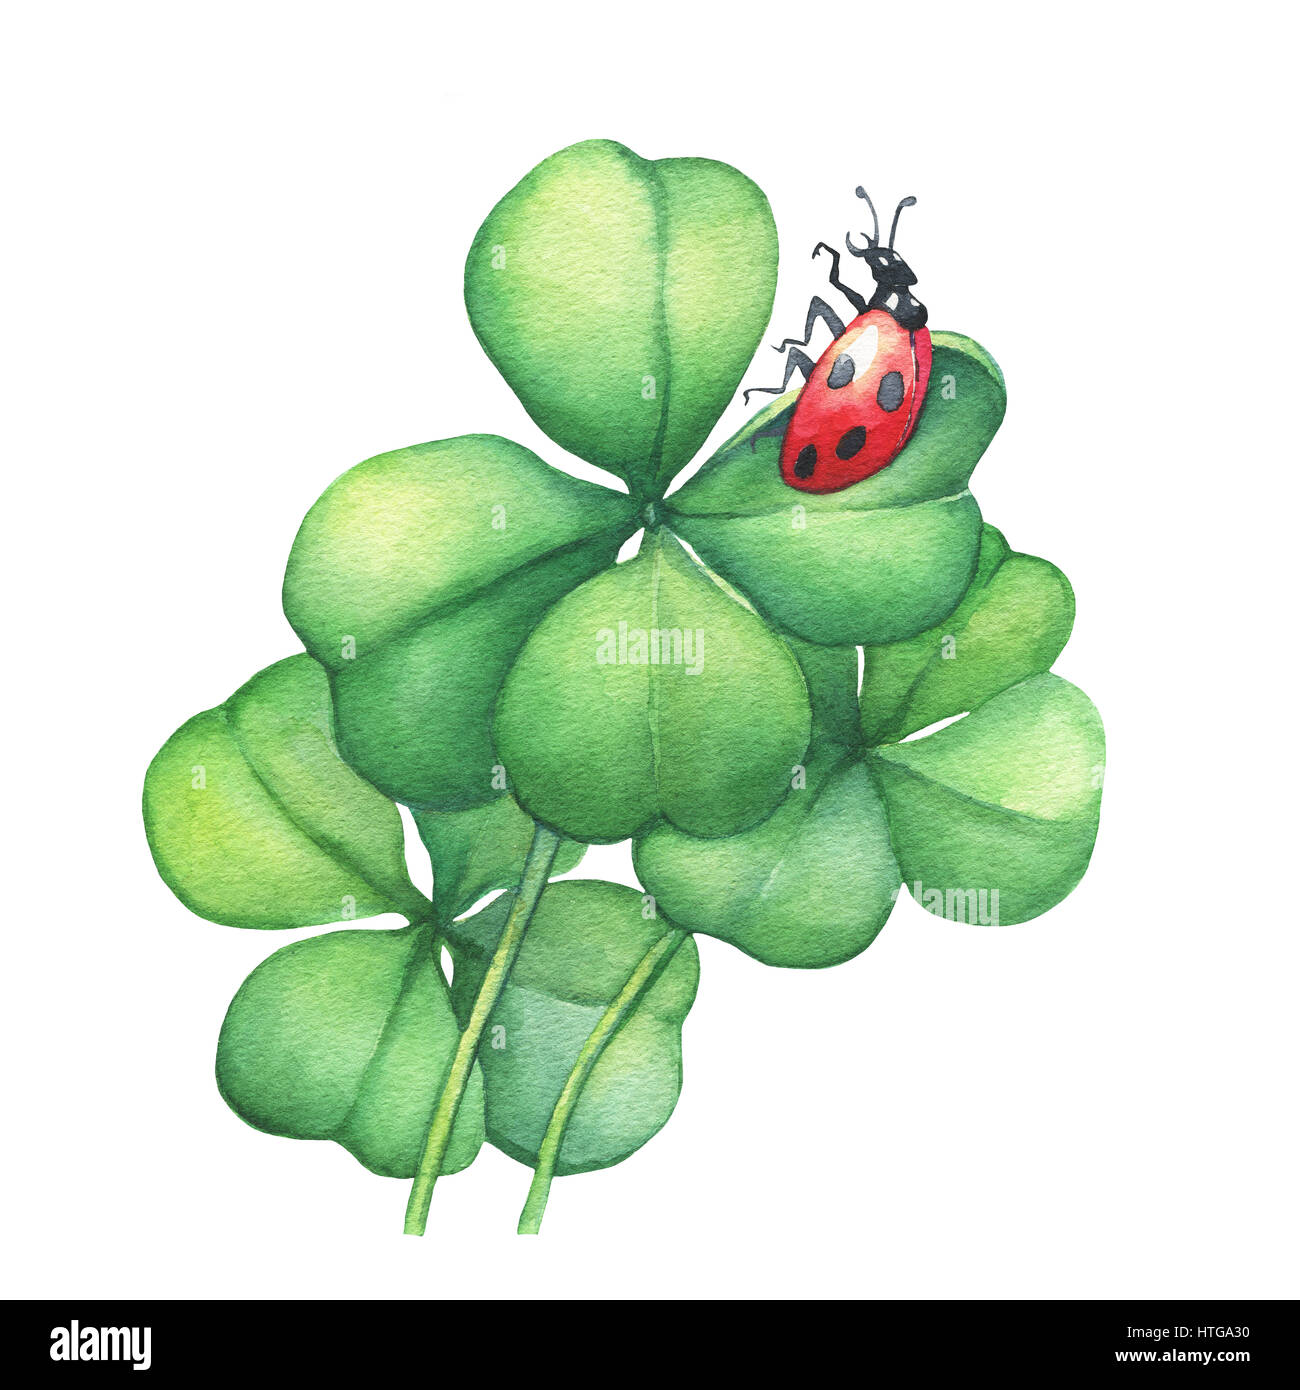 Ladybug sitting on a green four leaf clover. Hand drawn watercolor painting on white background. - Stock Image